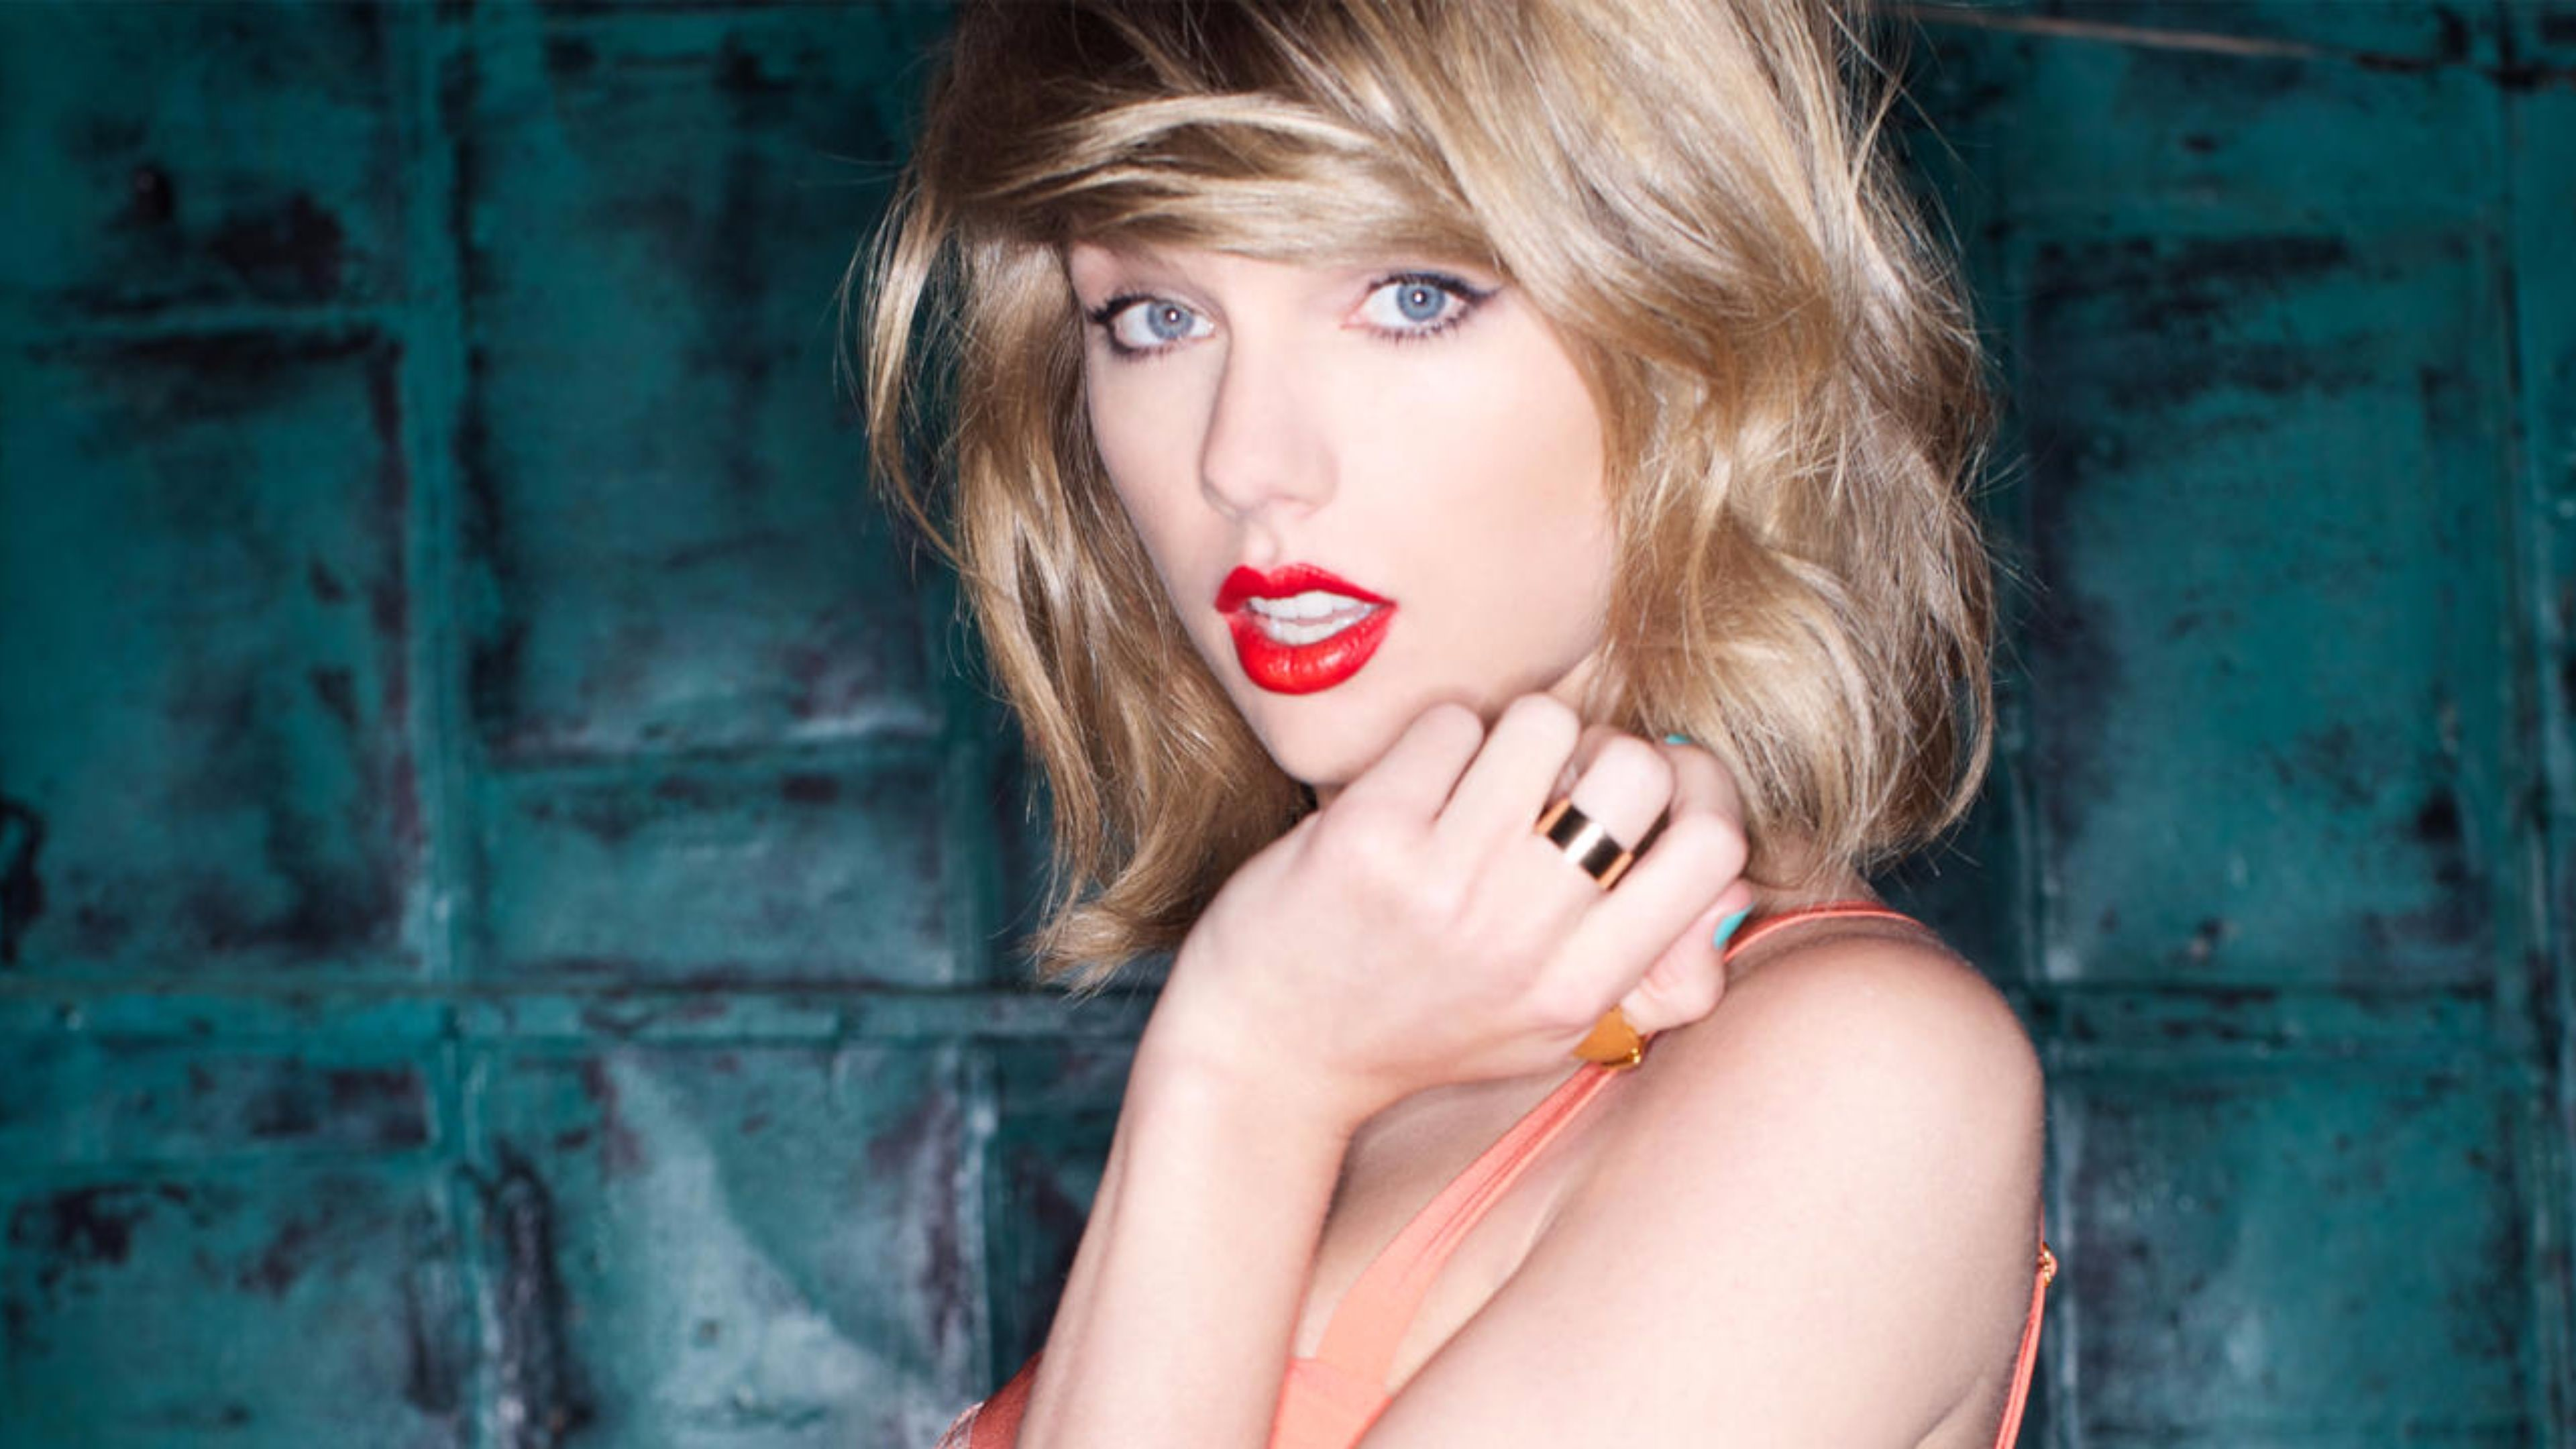 Taylor swift hd 2018 wallpapers 70 images 3840x2160 free download 4k taylor swift wallpaper voltagebd Images